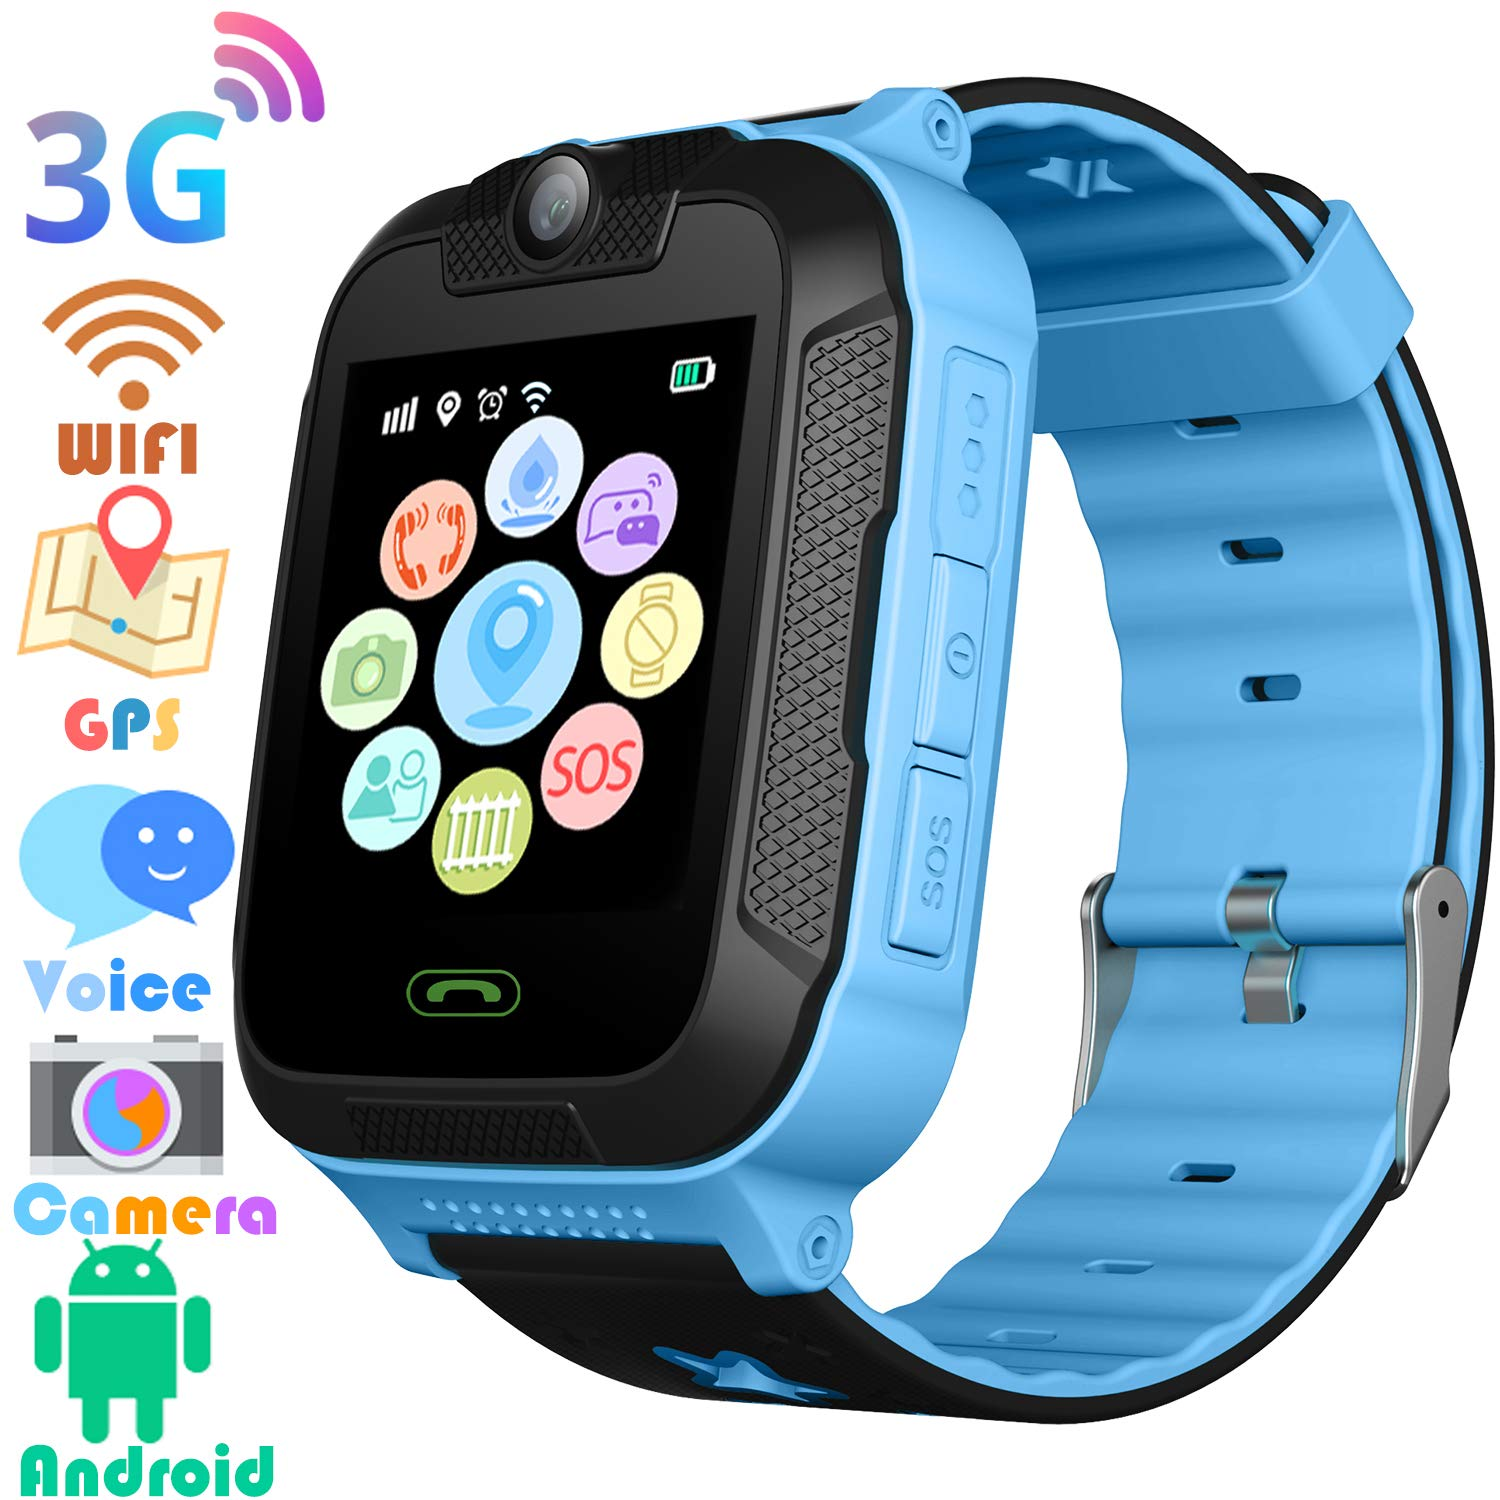 3G Kids Smart Watches GPS Tracker – Kids Android Smart Watch Phone for Boys Girls with 1.4″ Touch Screen Fitness Tracker Phone Camera Video Recorder Flashlight with T-Mobile/at&T